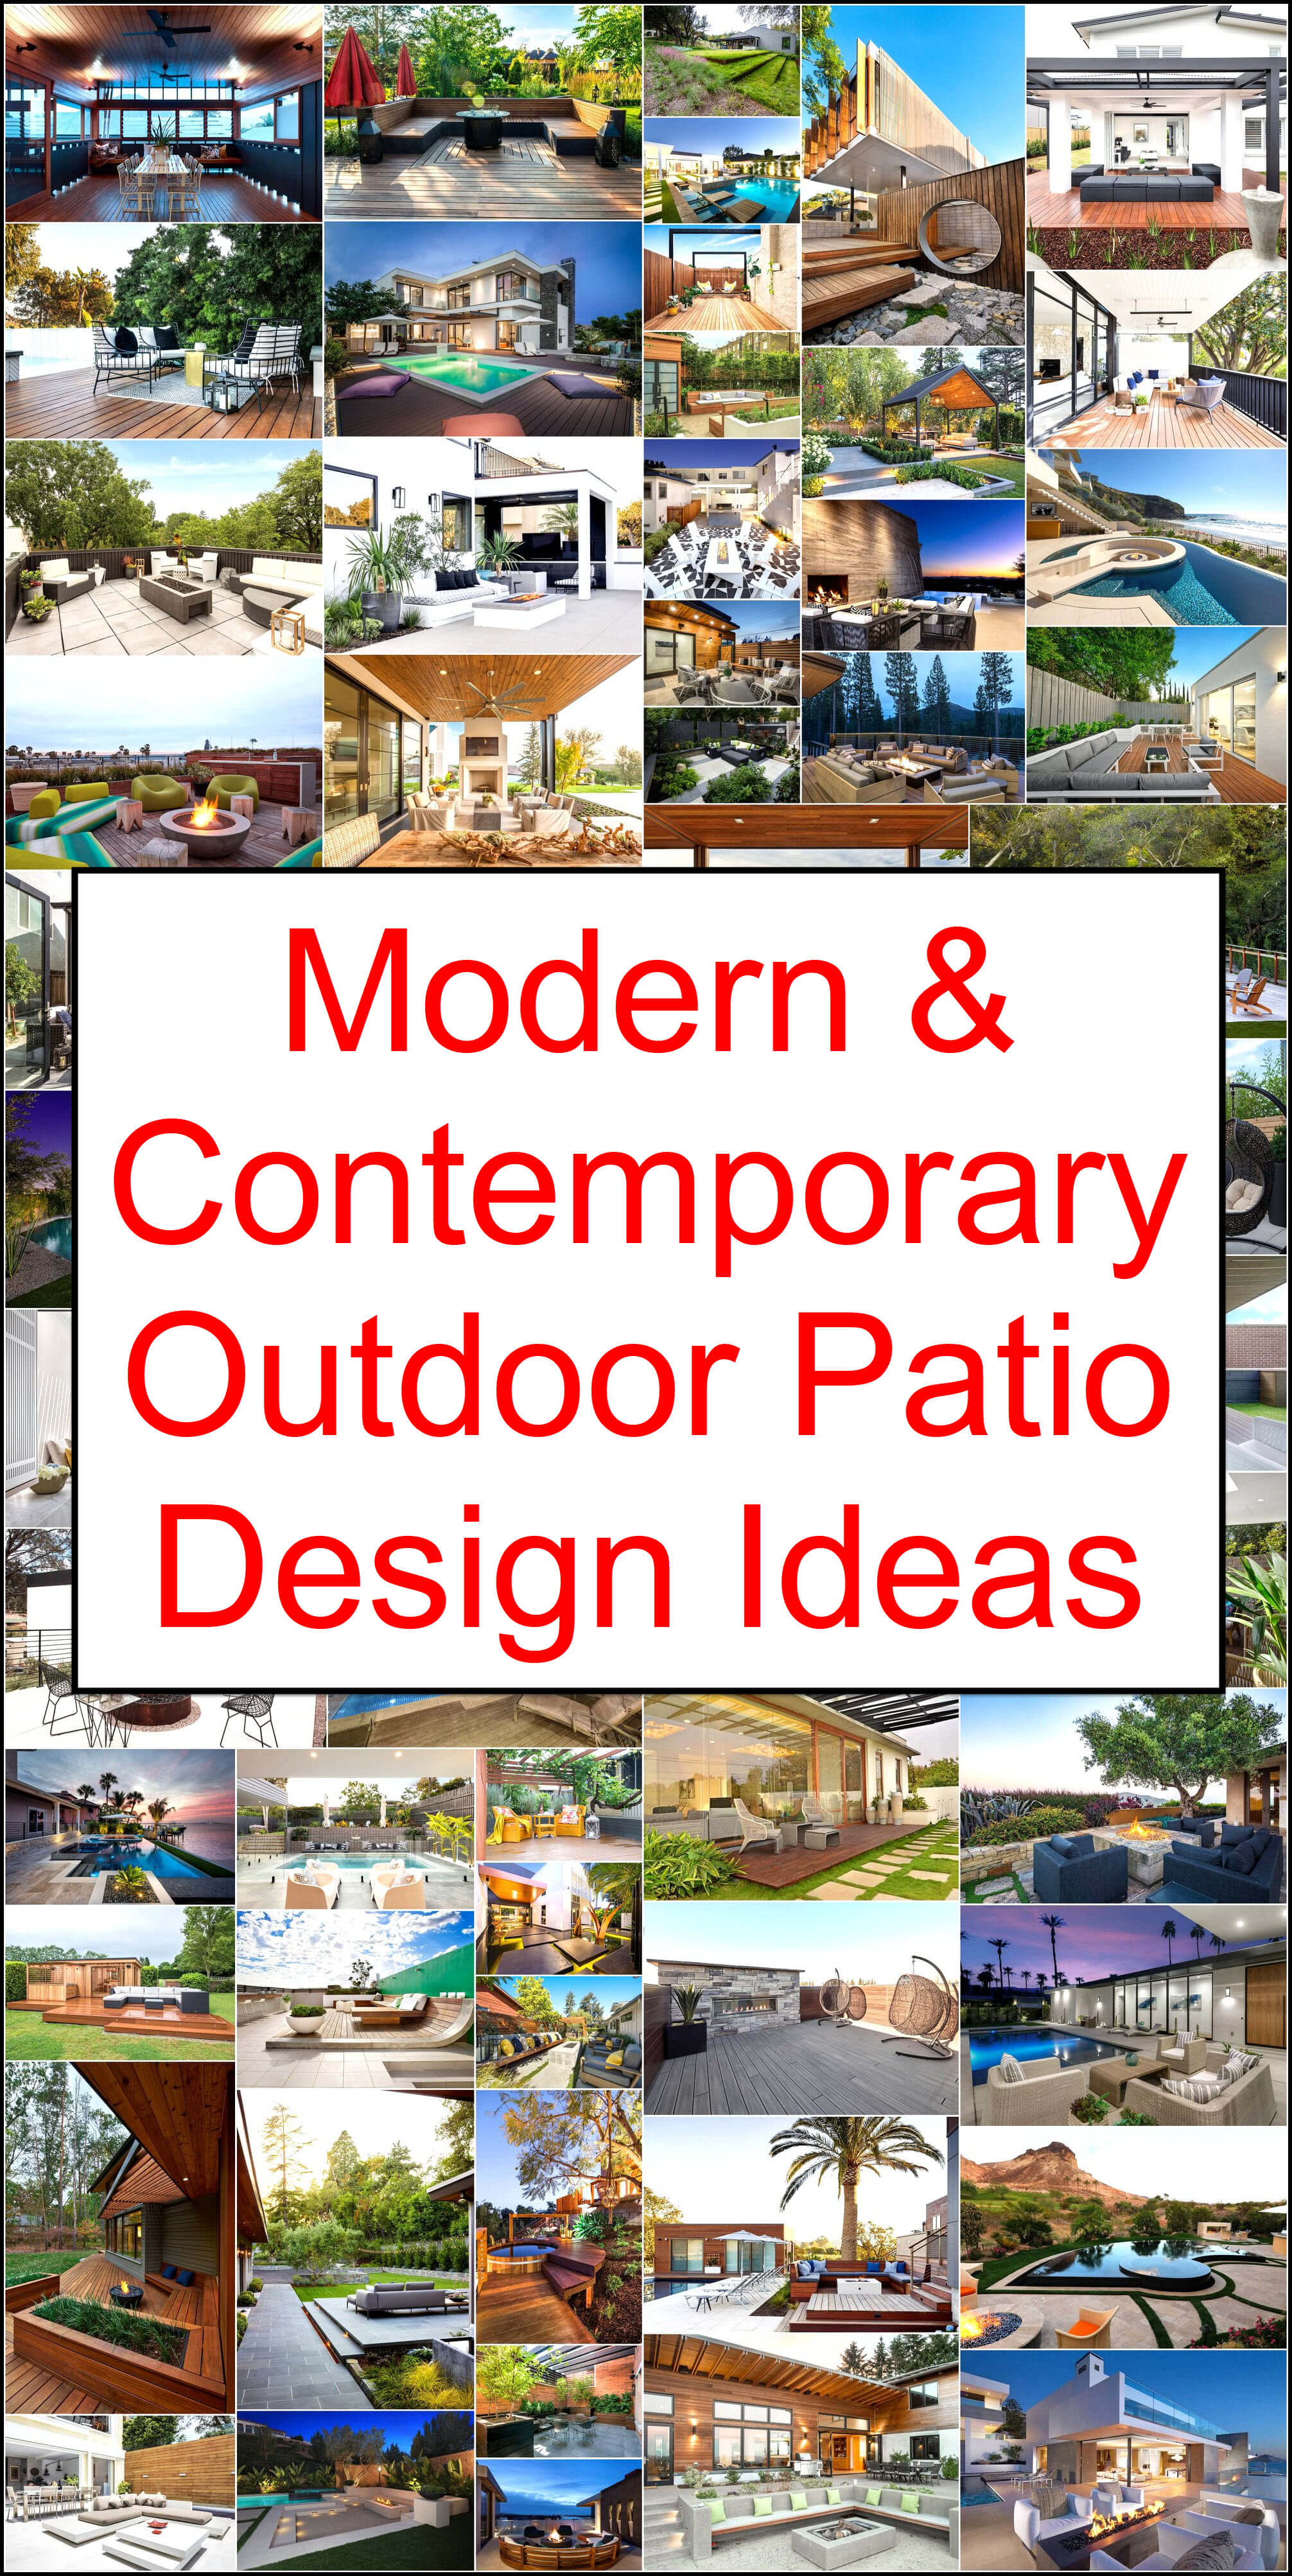 Modern Contemporary Outdoor Patio Design Ideas Pergola Gazebos